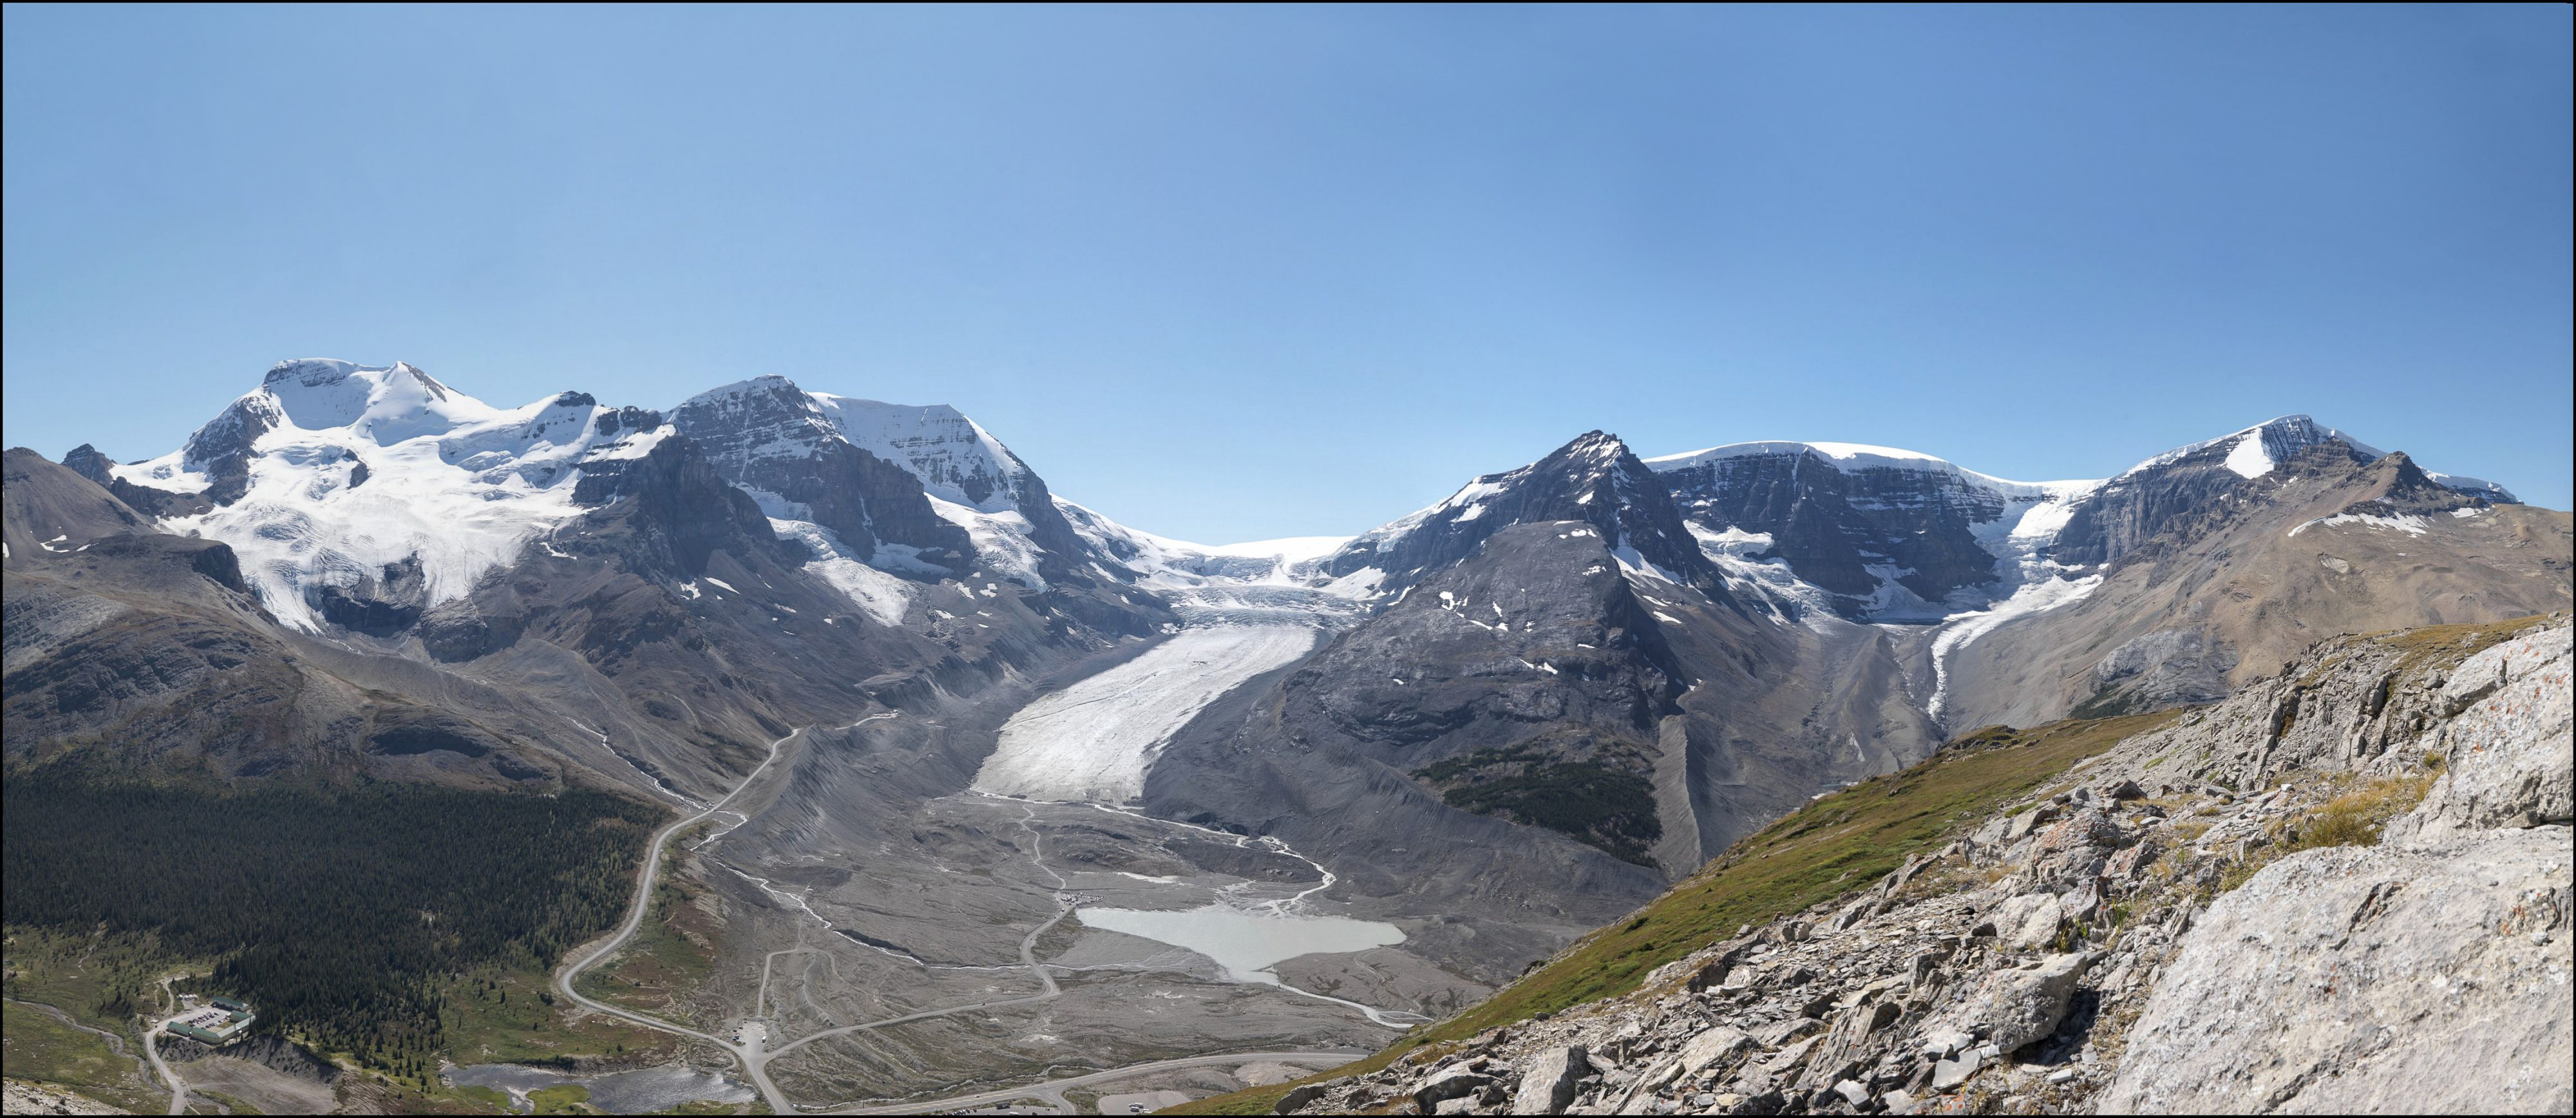 The Athabasca Glacier: MLP, 2011